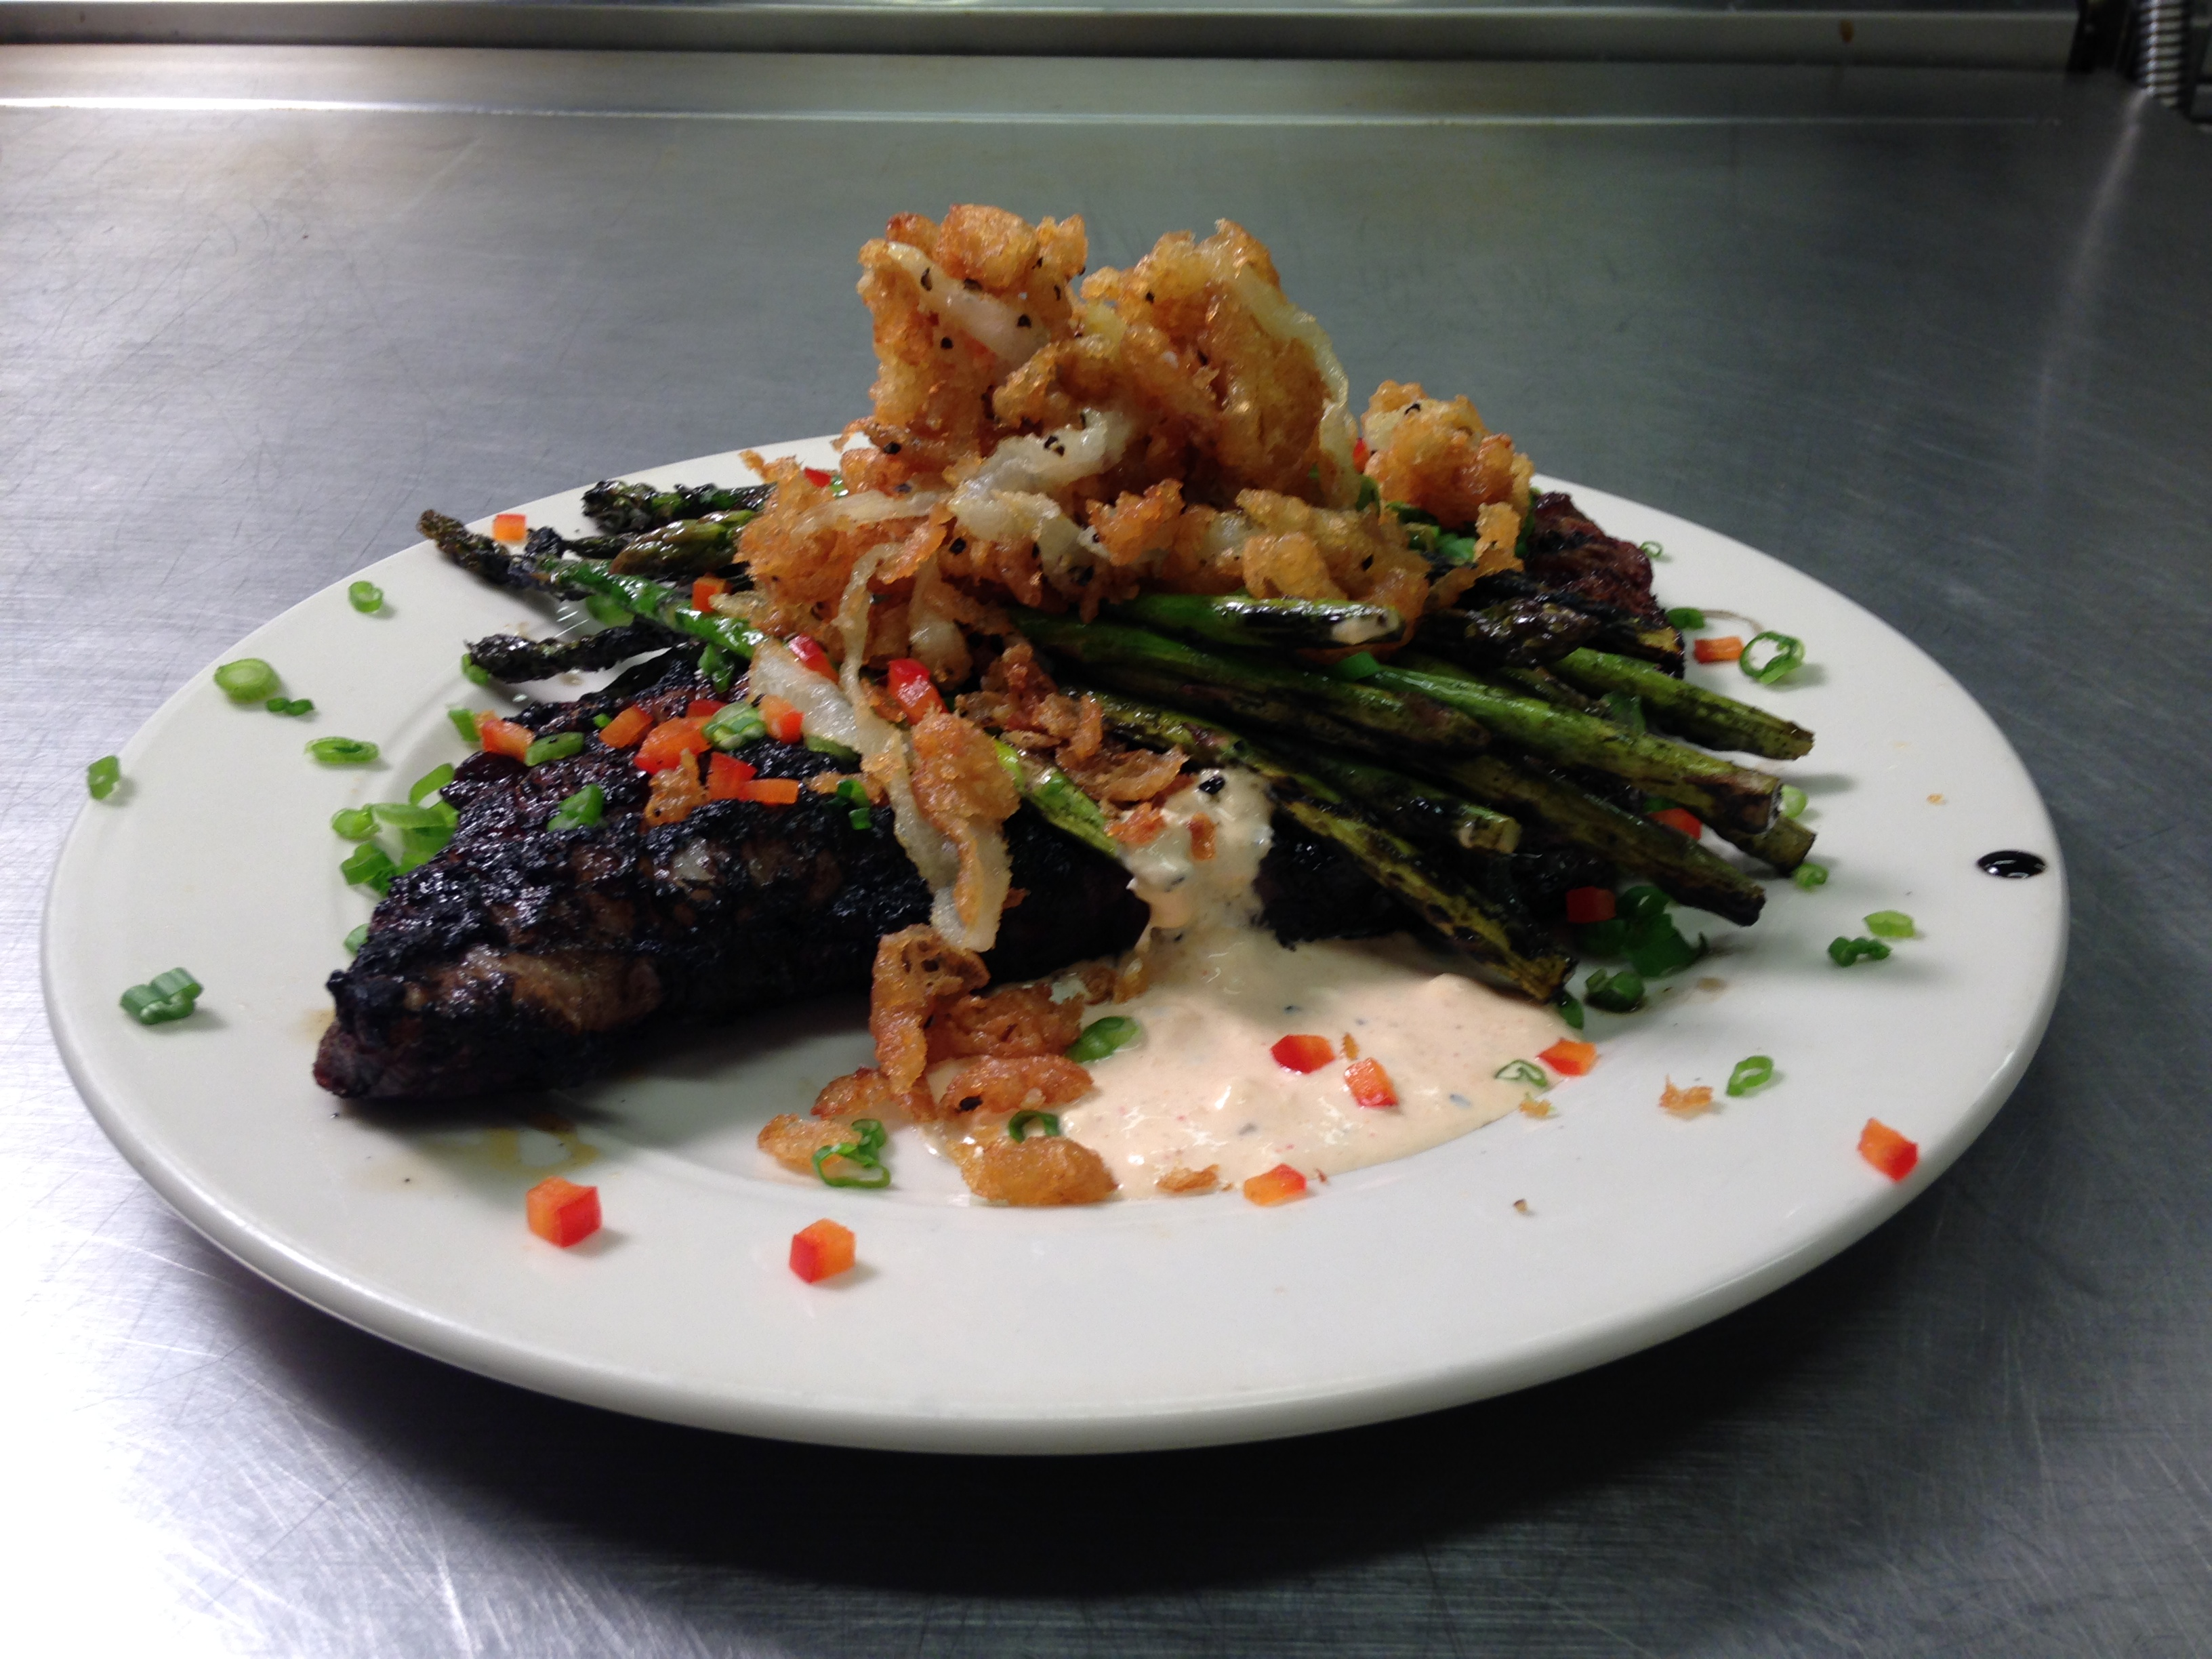 ... Kitchen: Grilled Coffee Rubbed Rib Eye Steak & Lemon Roasted Asparagus